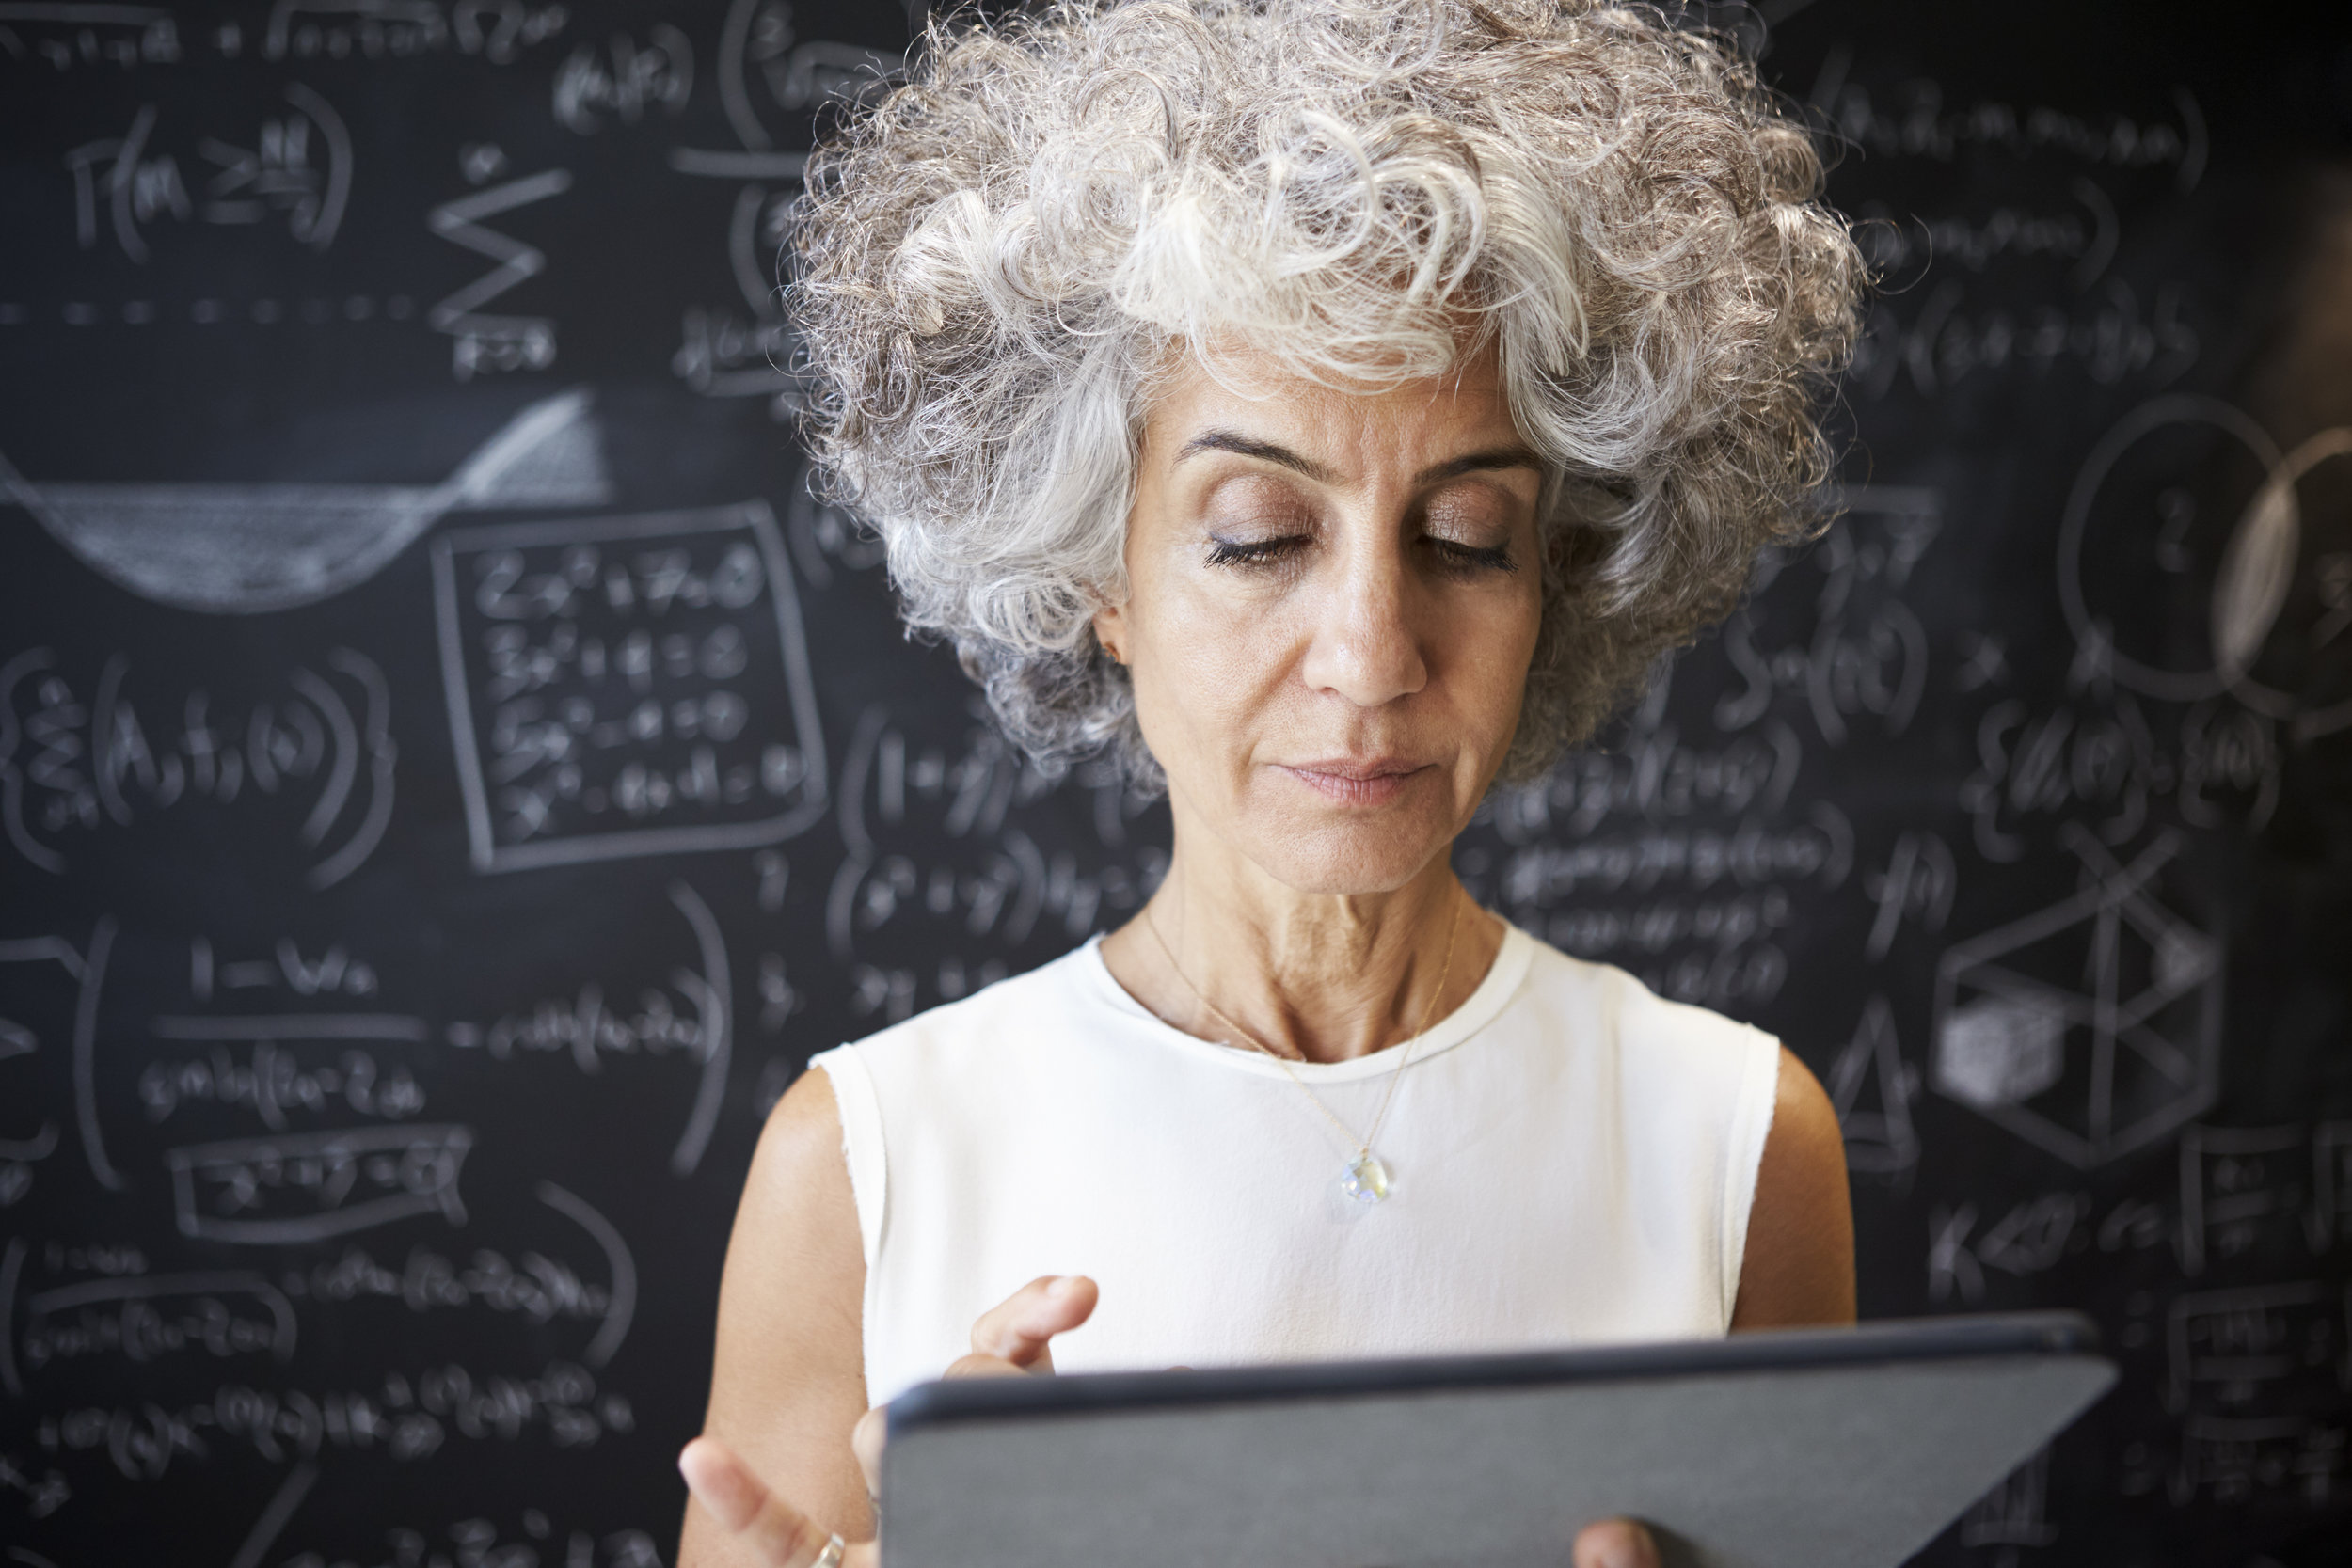 middle-aged-academic-woman-using-tablet-close-up-PC86U9P.jpg